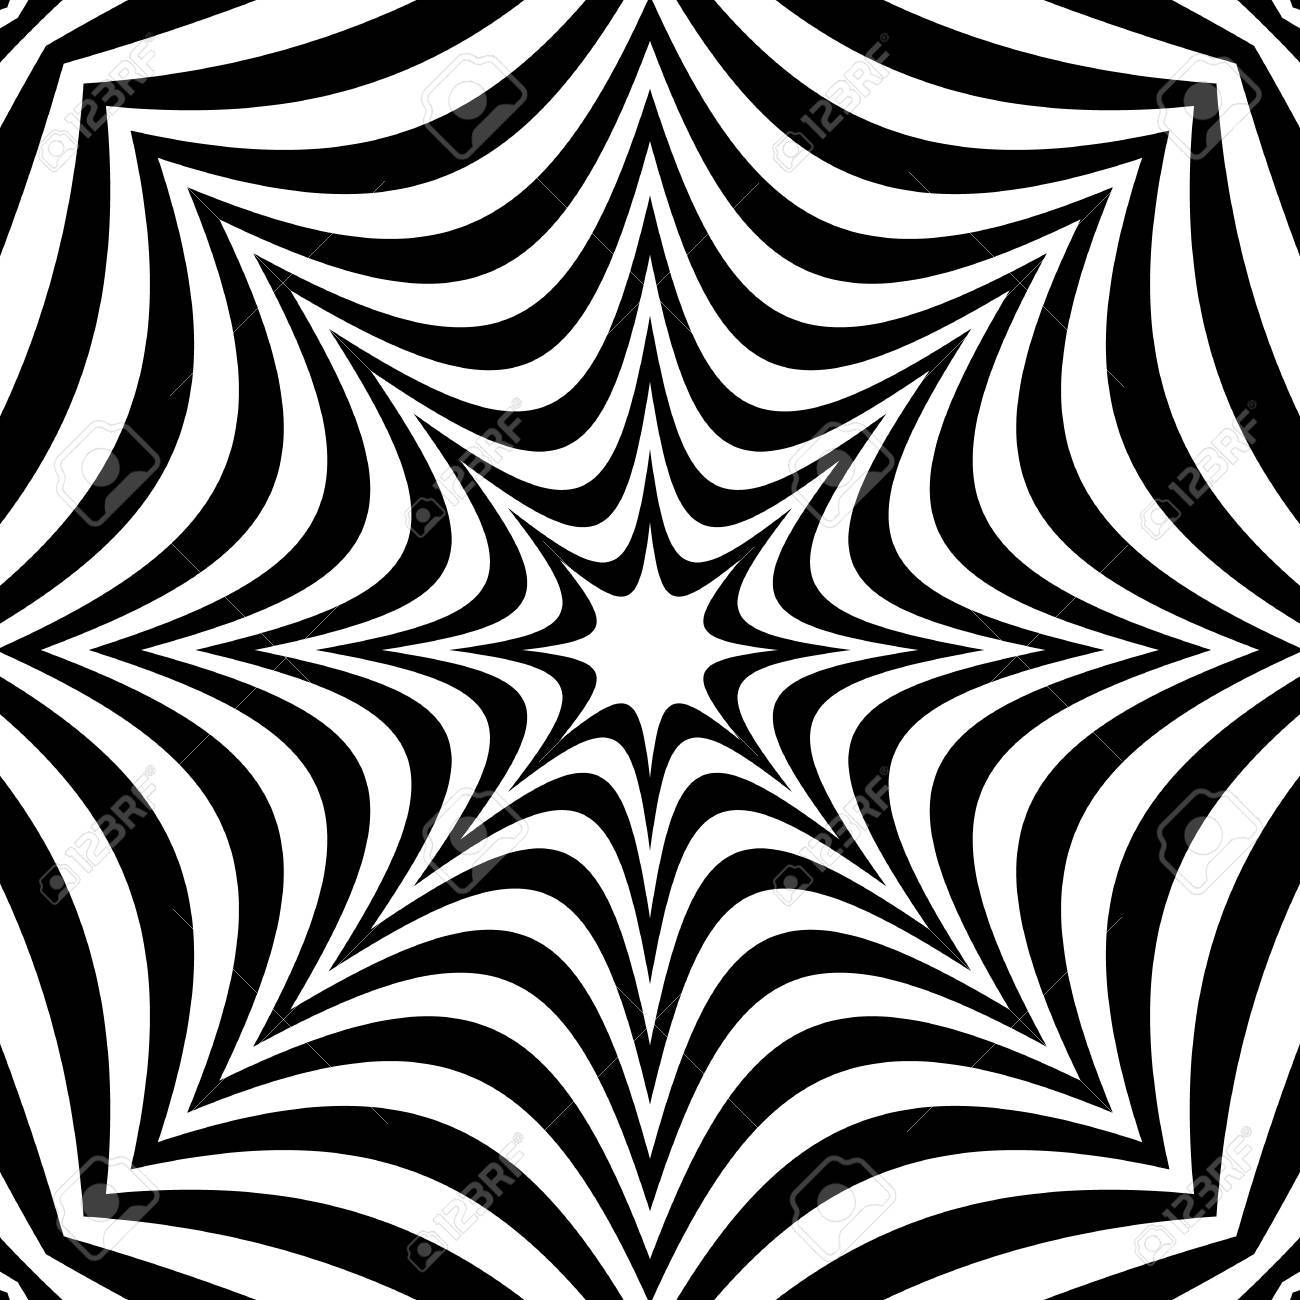 Radial geometric graphic with distortion effect. Irregular radiating lines pattern. abstract monochrome pattern - 69940199